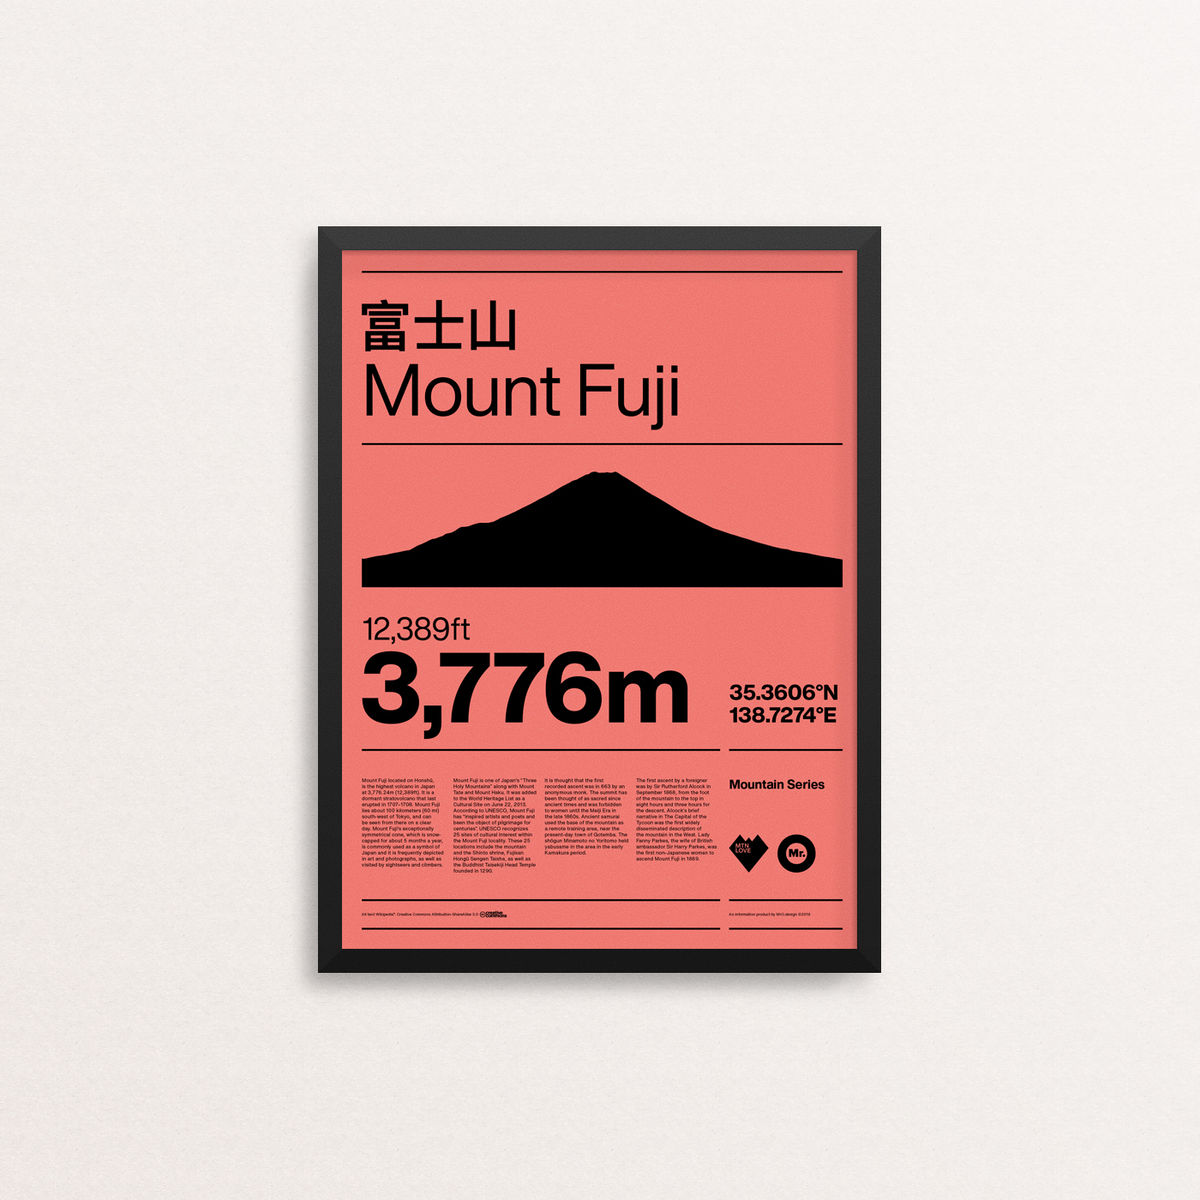 MTN Love - Mount Fuji - product image